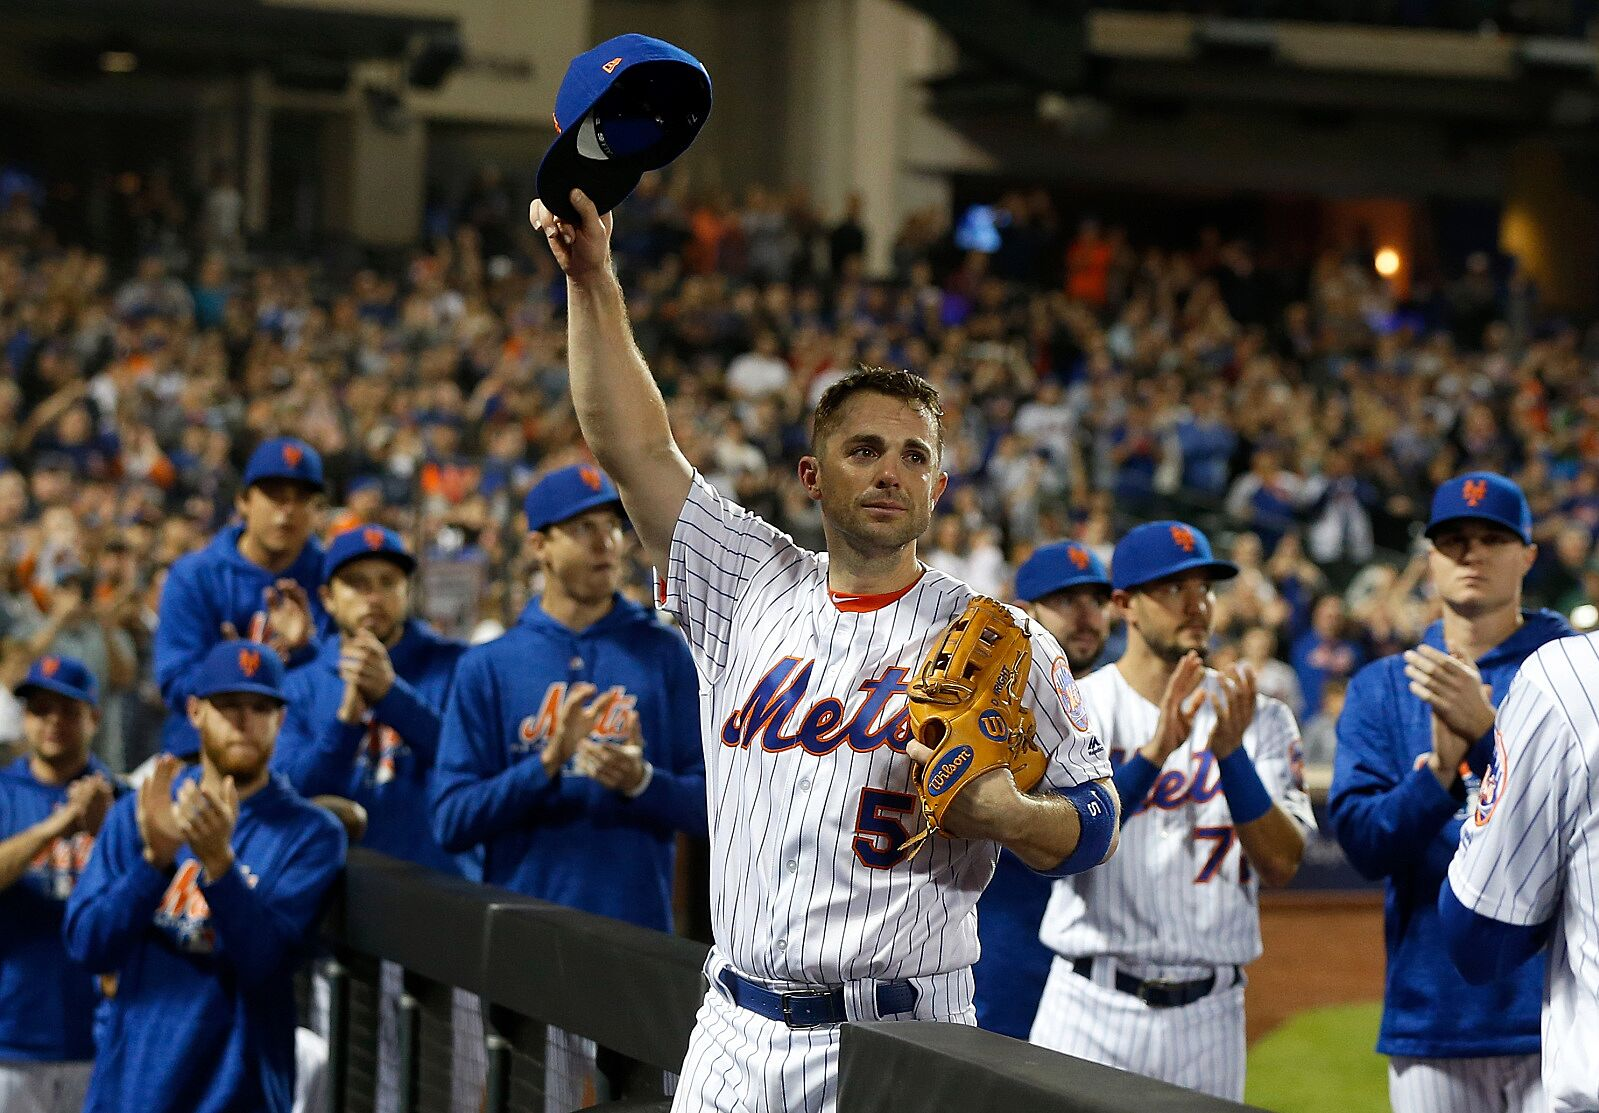 New York Mets 2019 roller coaster ride ends, bring on 2020!